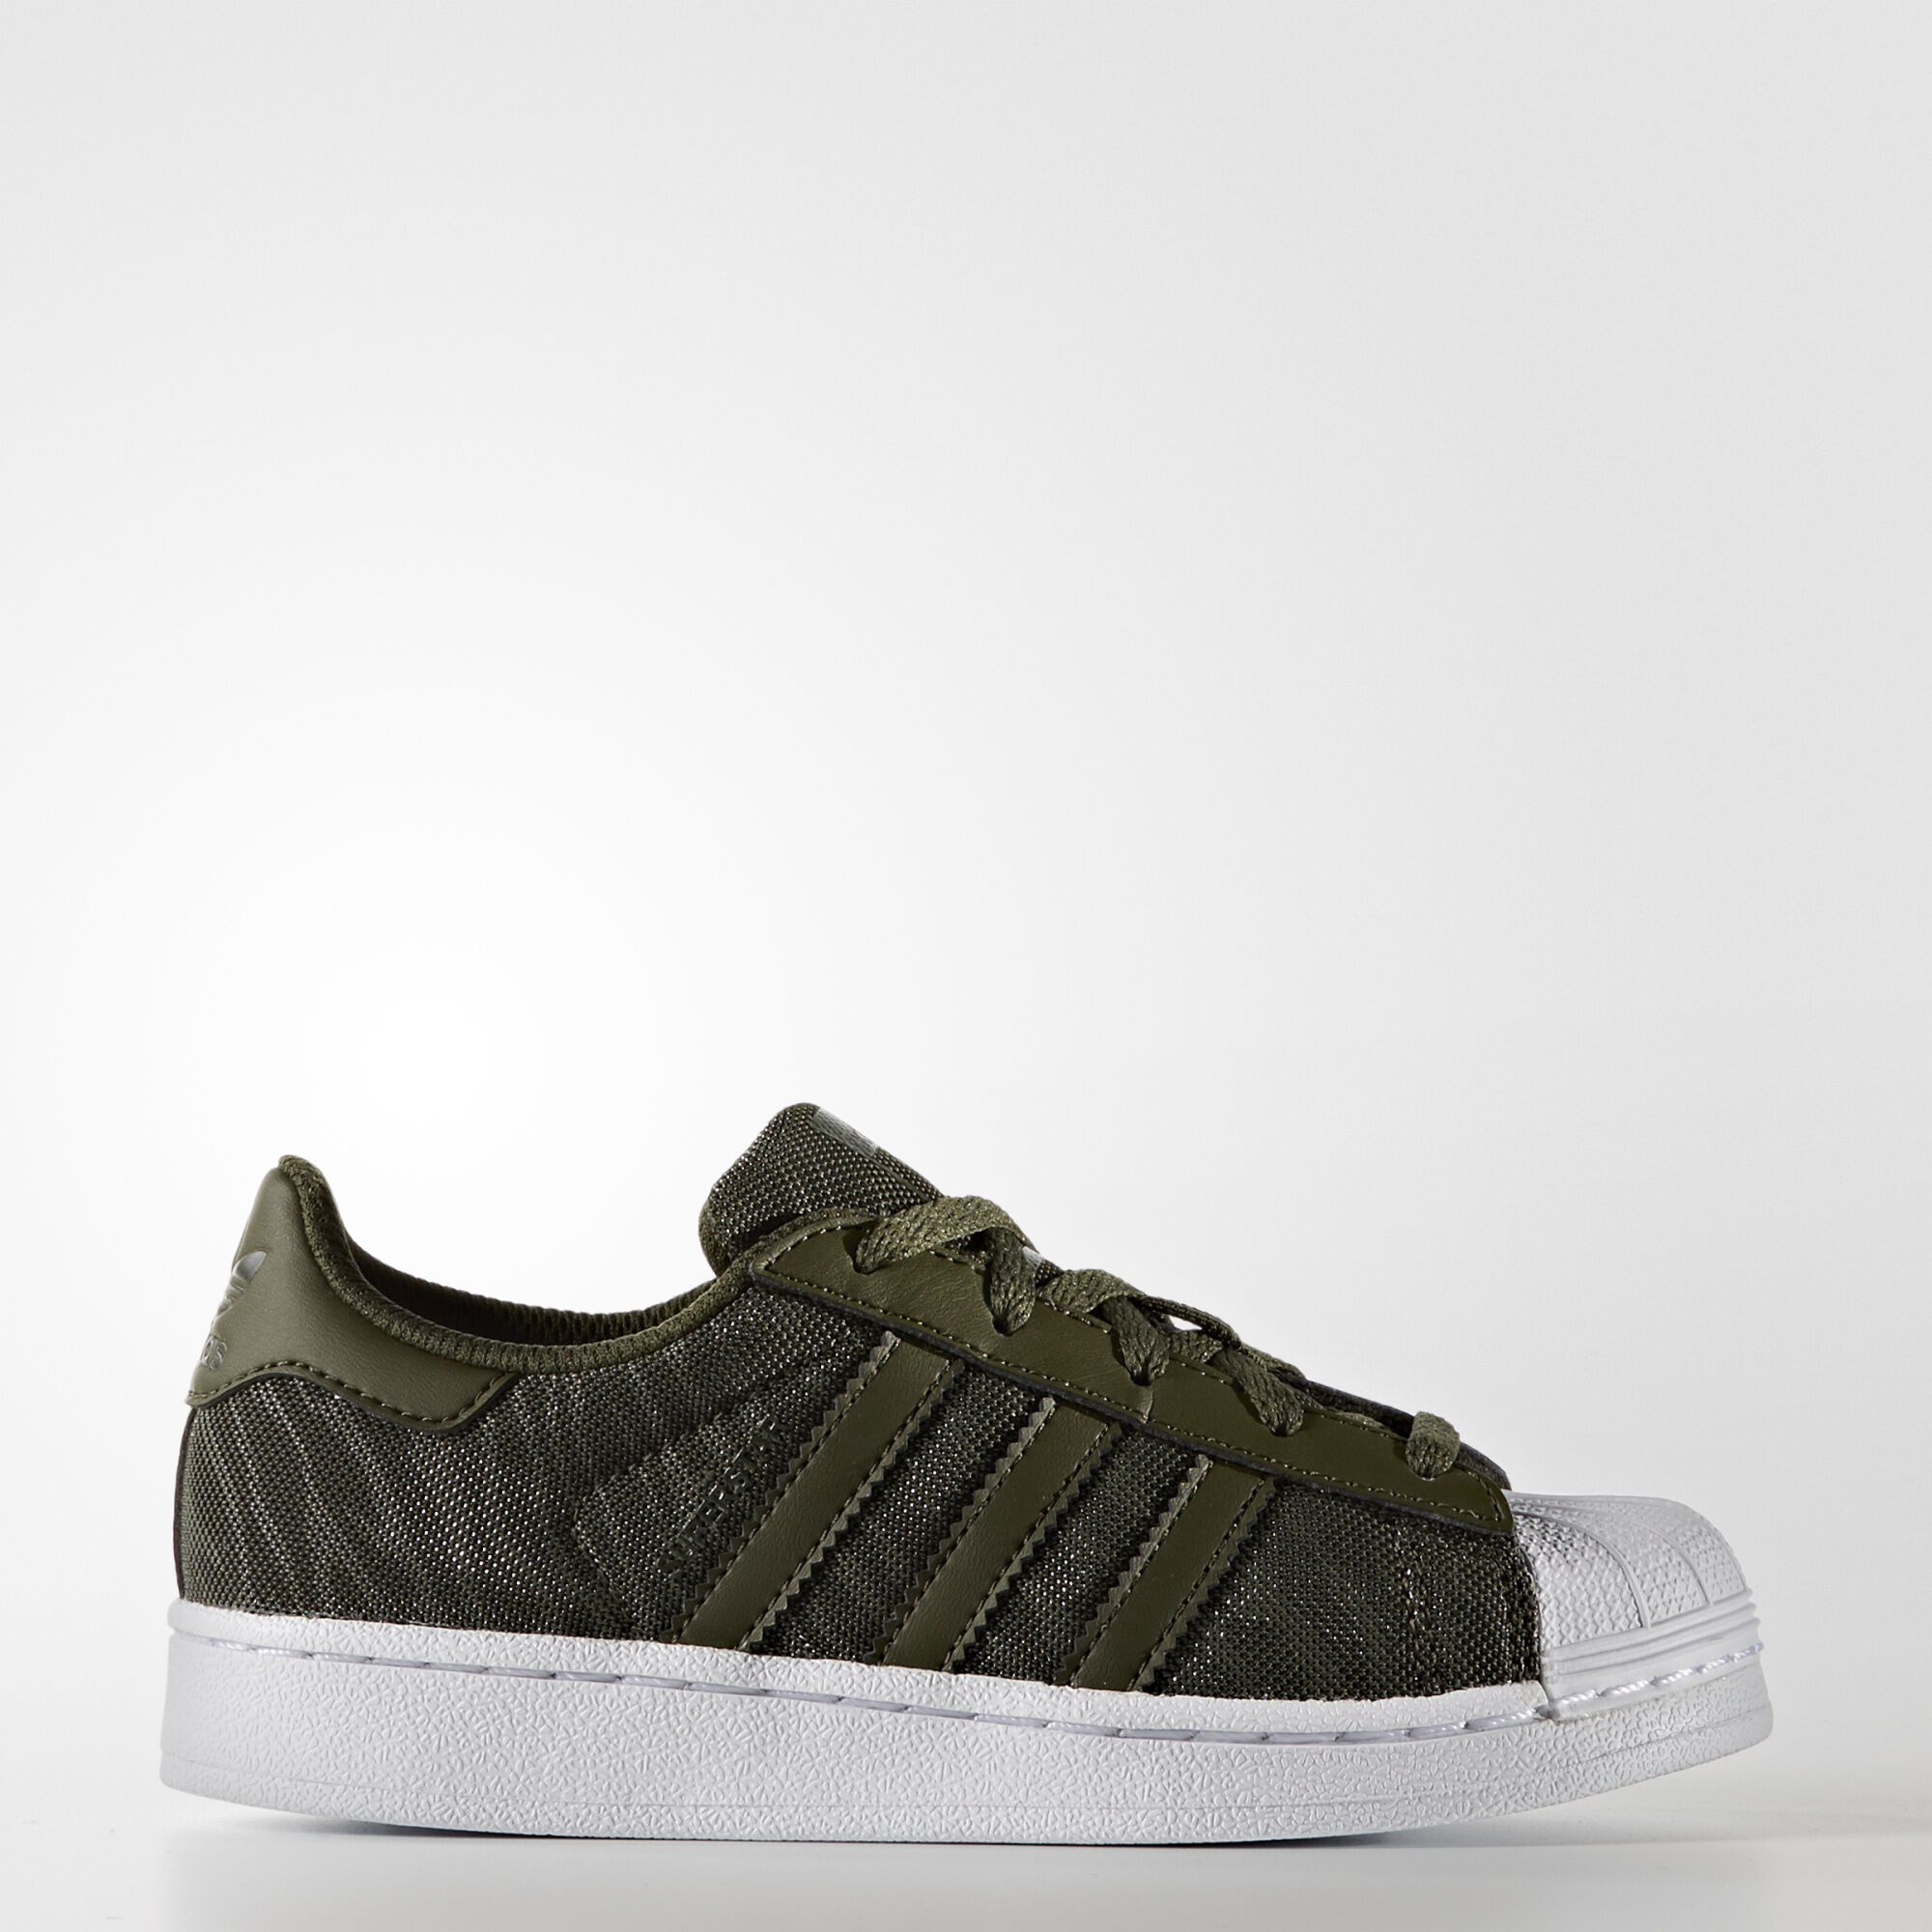 Adidas Superstar Rojas Enteras